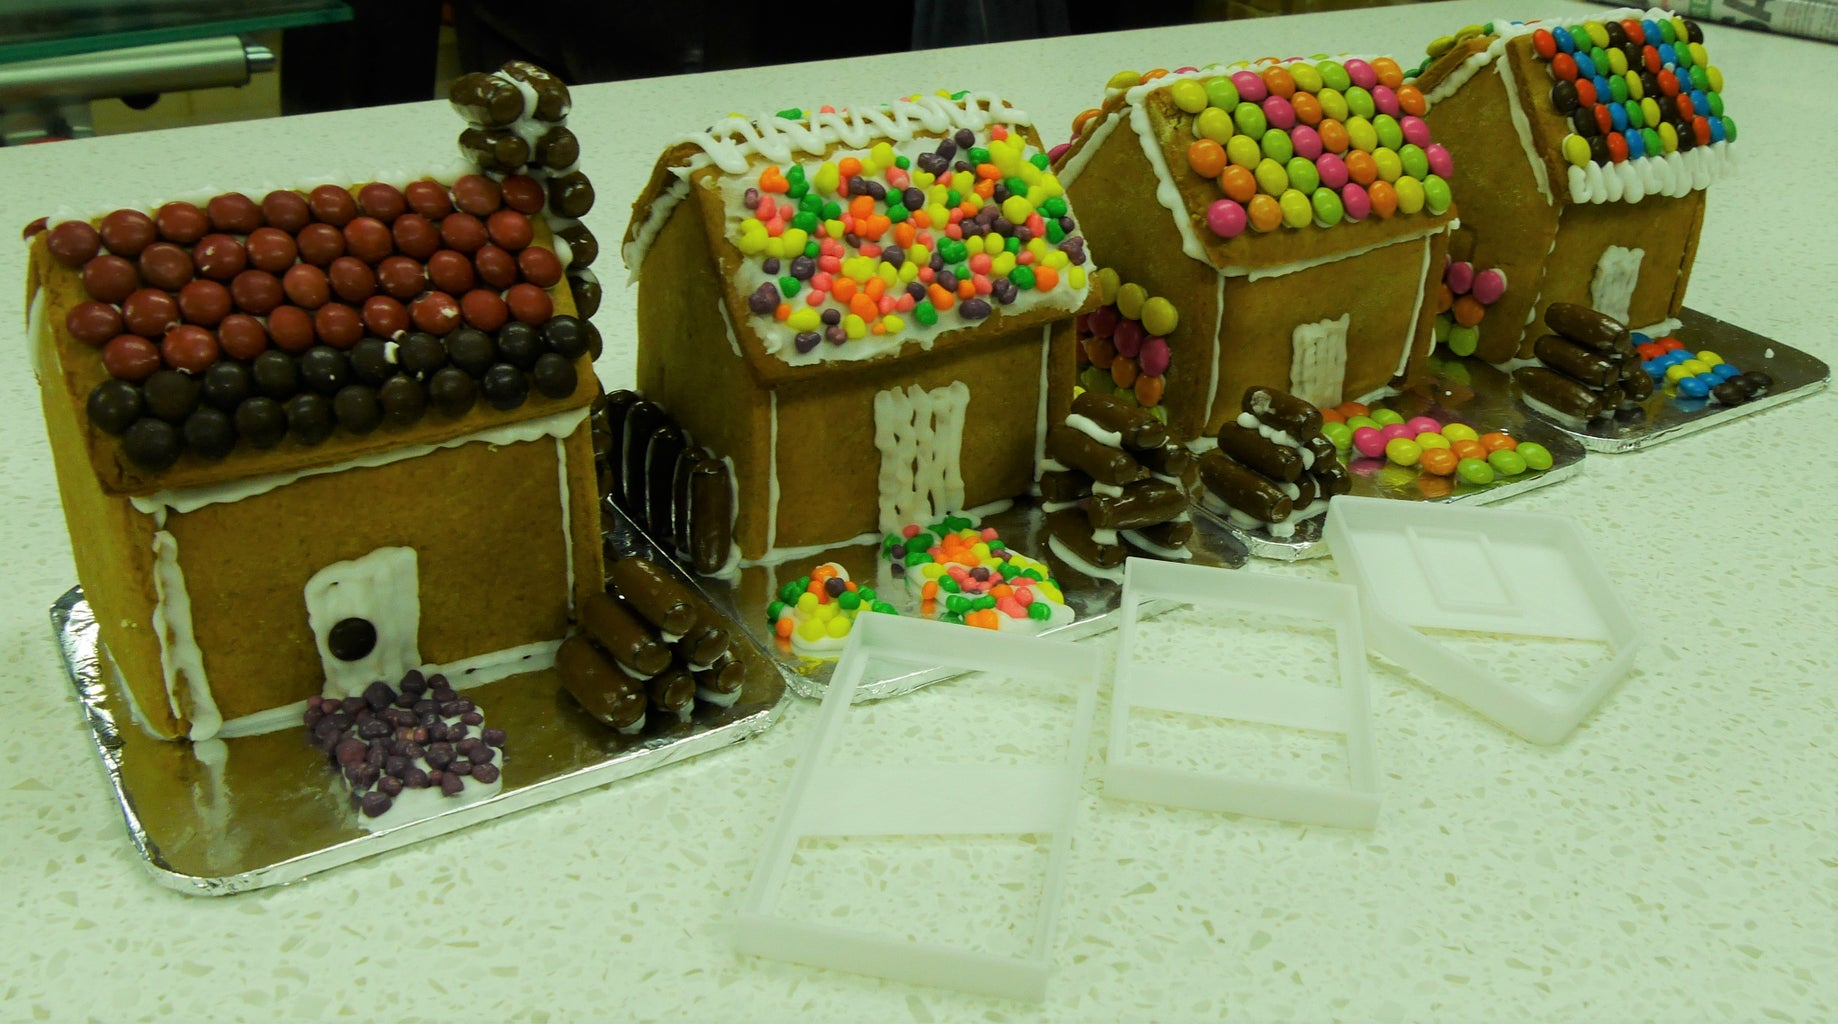 3D Printed Gingerbread House